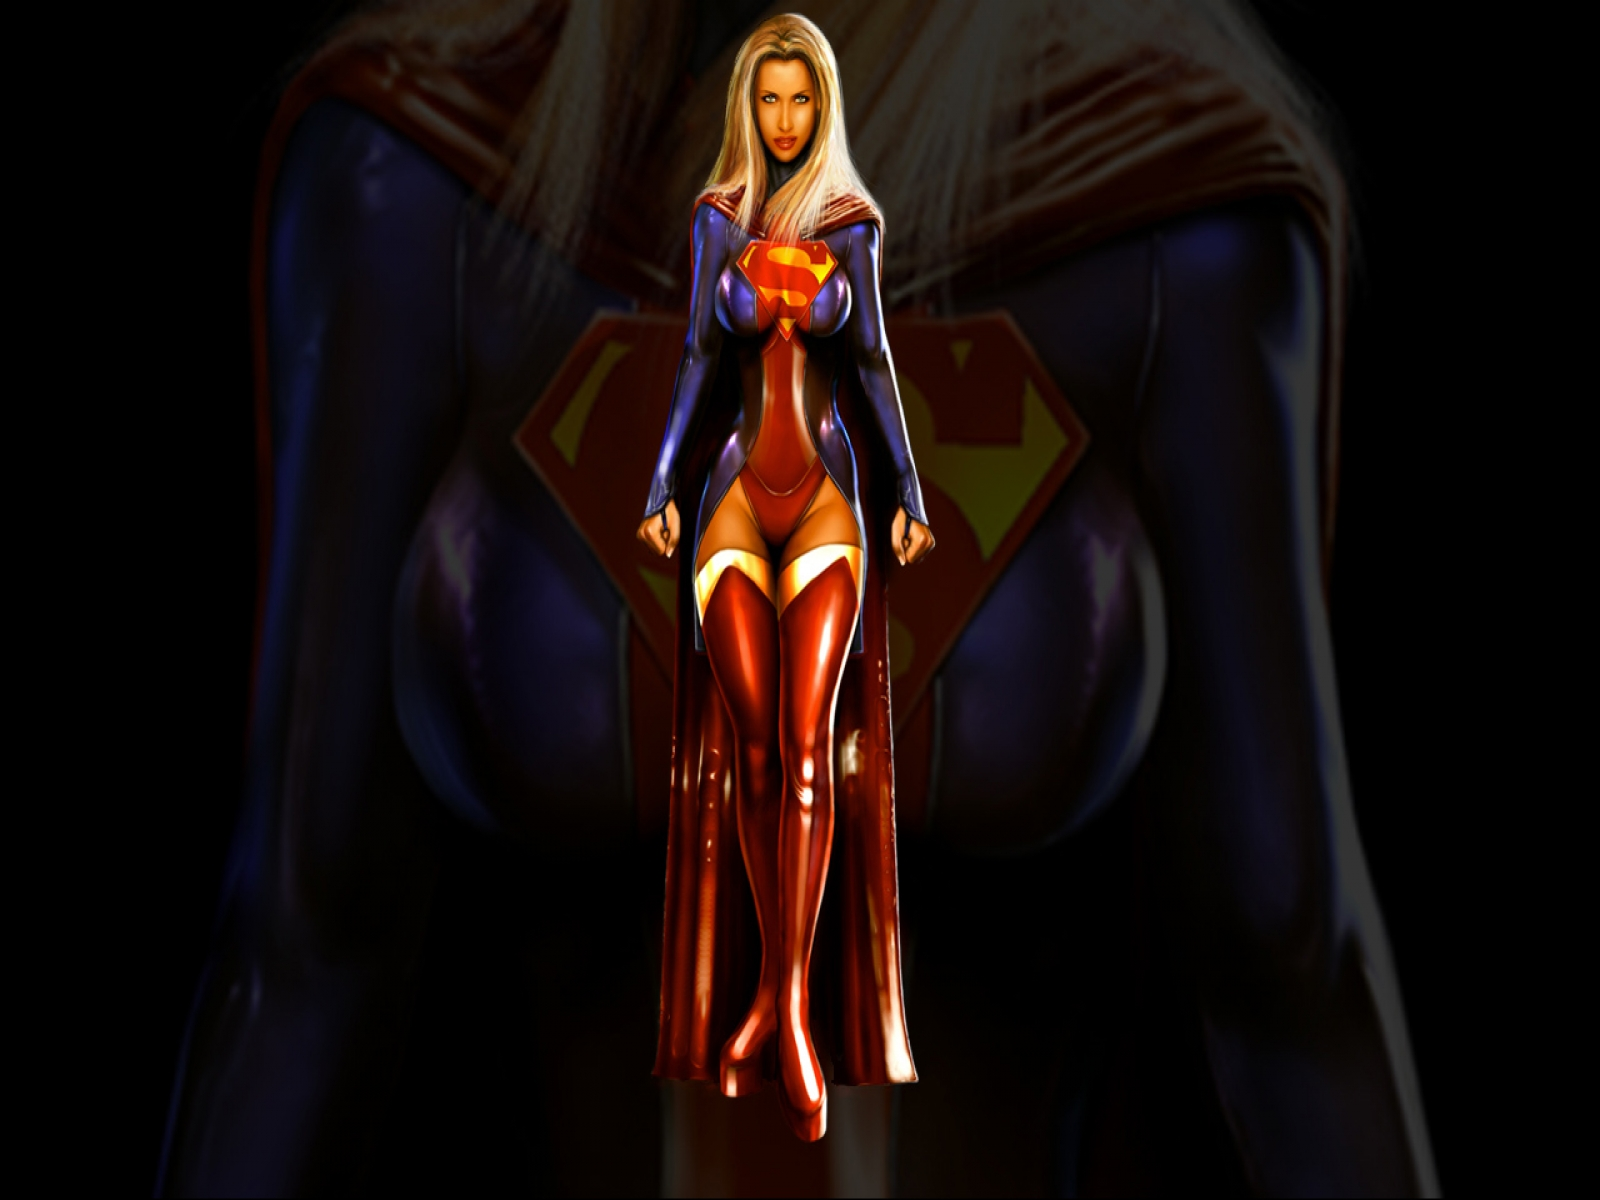 153 Supergirl Hd Wallpapers  Backgrounds - Wallpaper Abyss - Page 2-2970